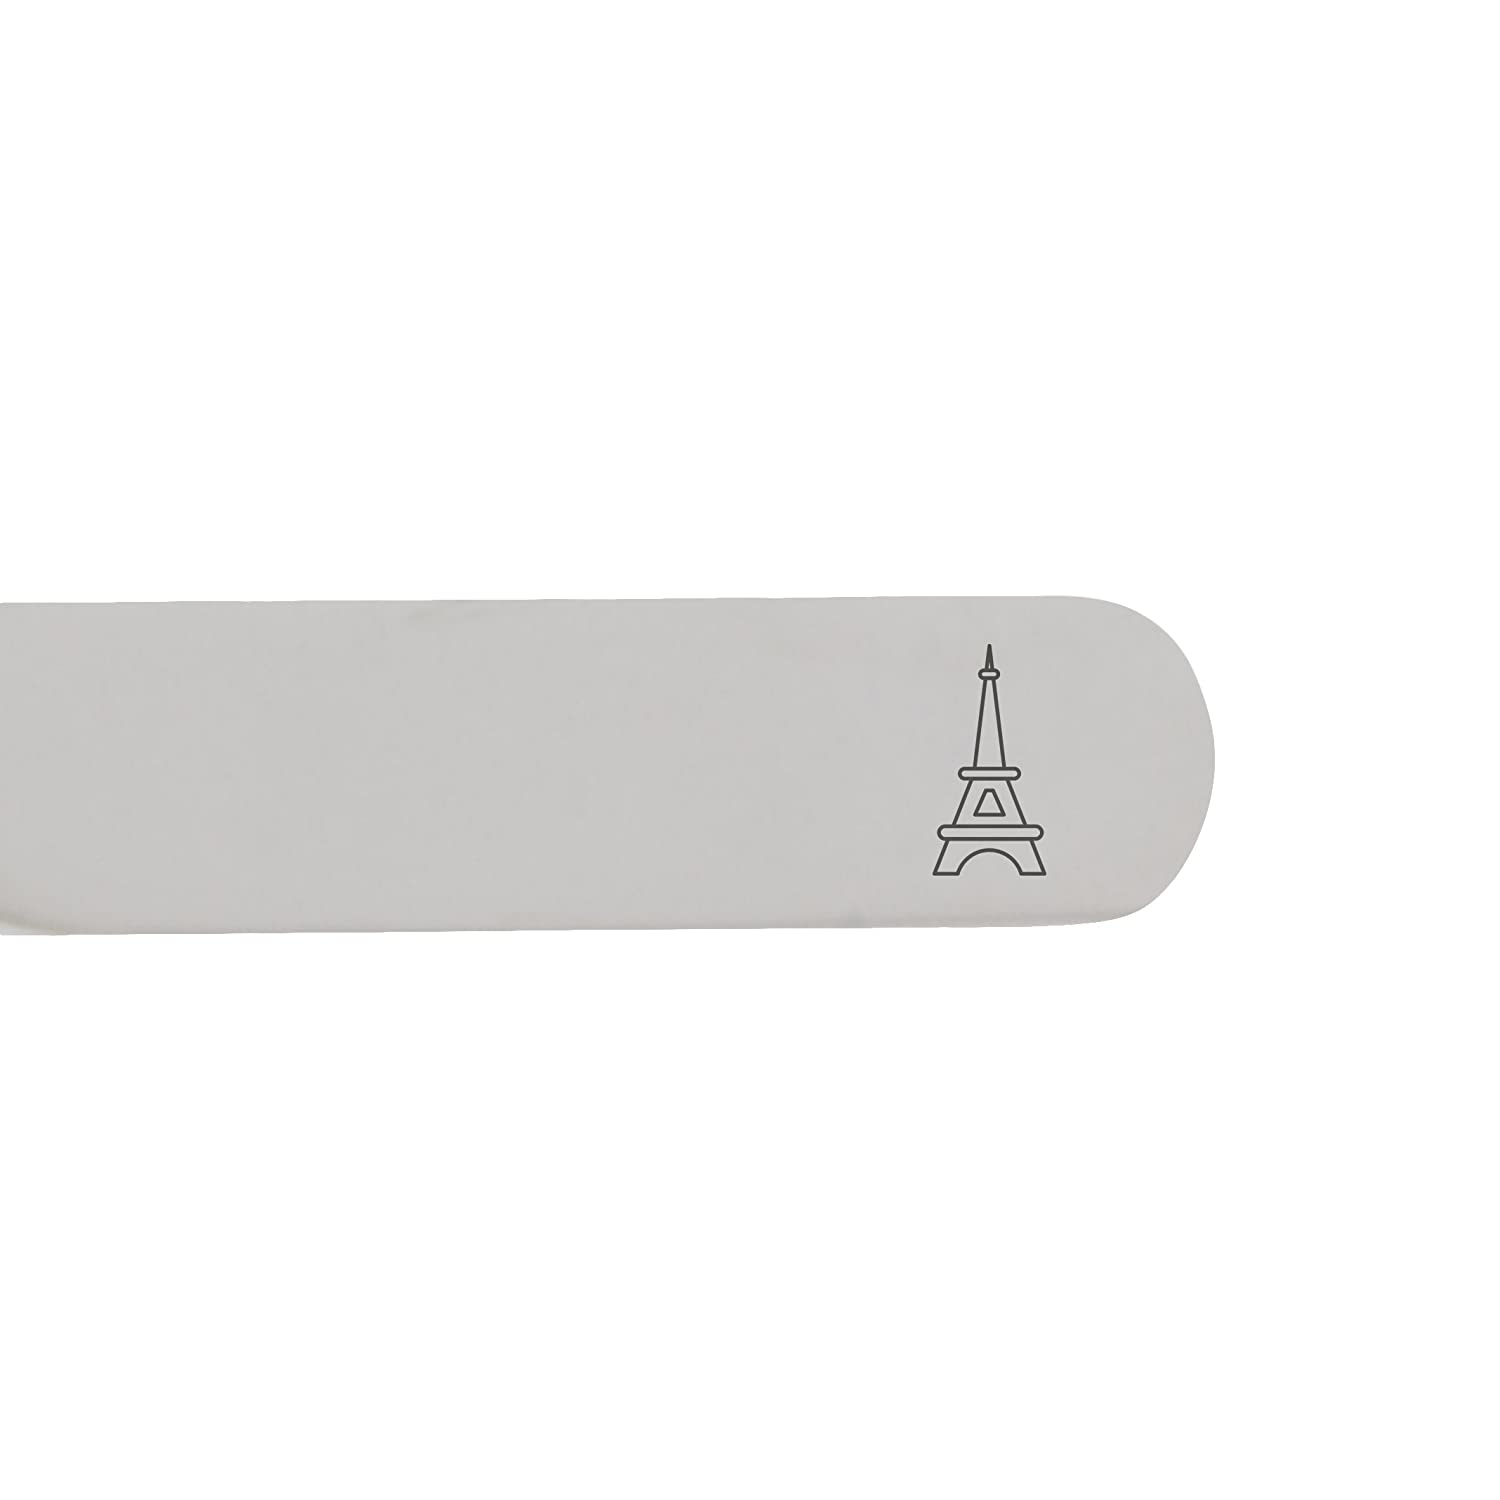 Made In USA 2.5 Inch Metal Collar Stiffeners MODERN GOODS SHOP Stainless Steel Collar Stays With Laser Engraved Eiffel Tower Design